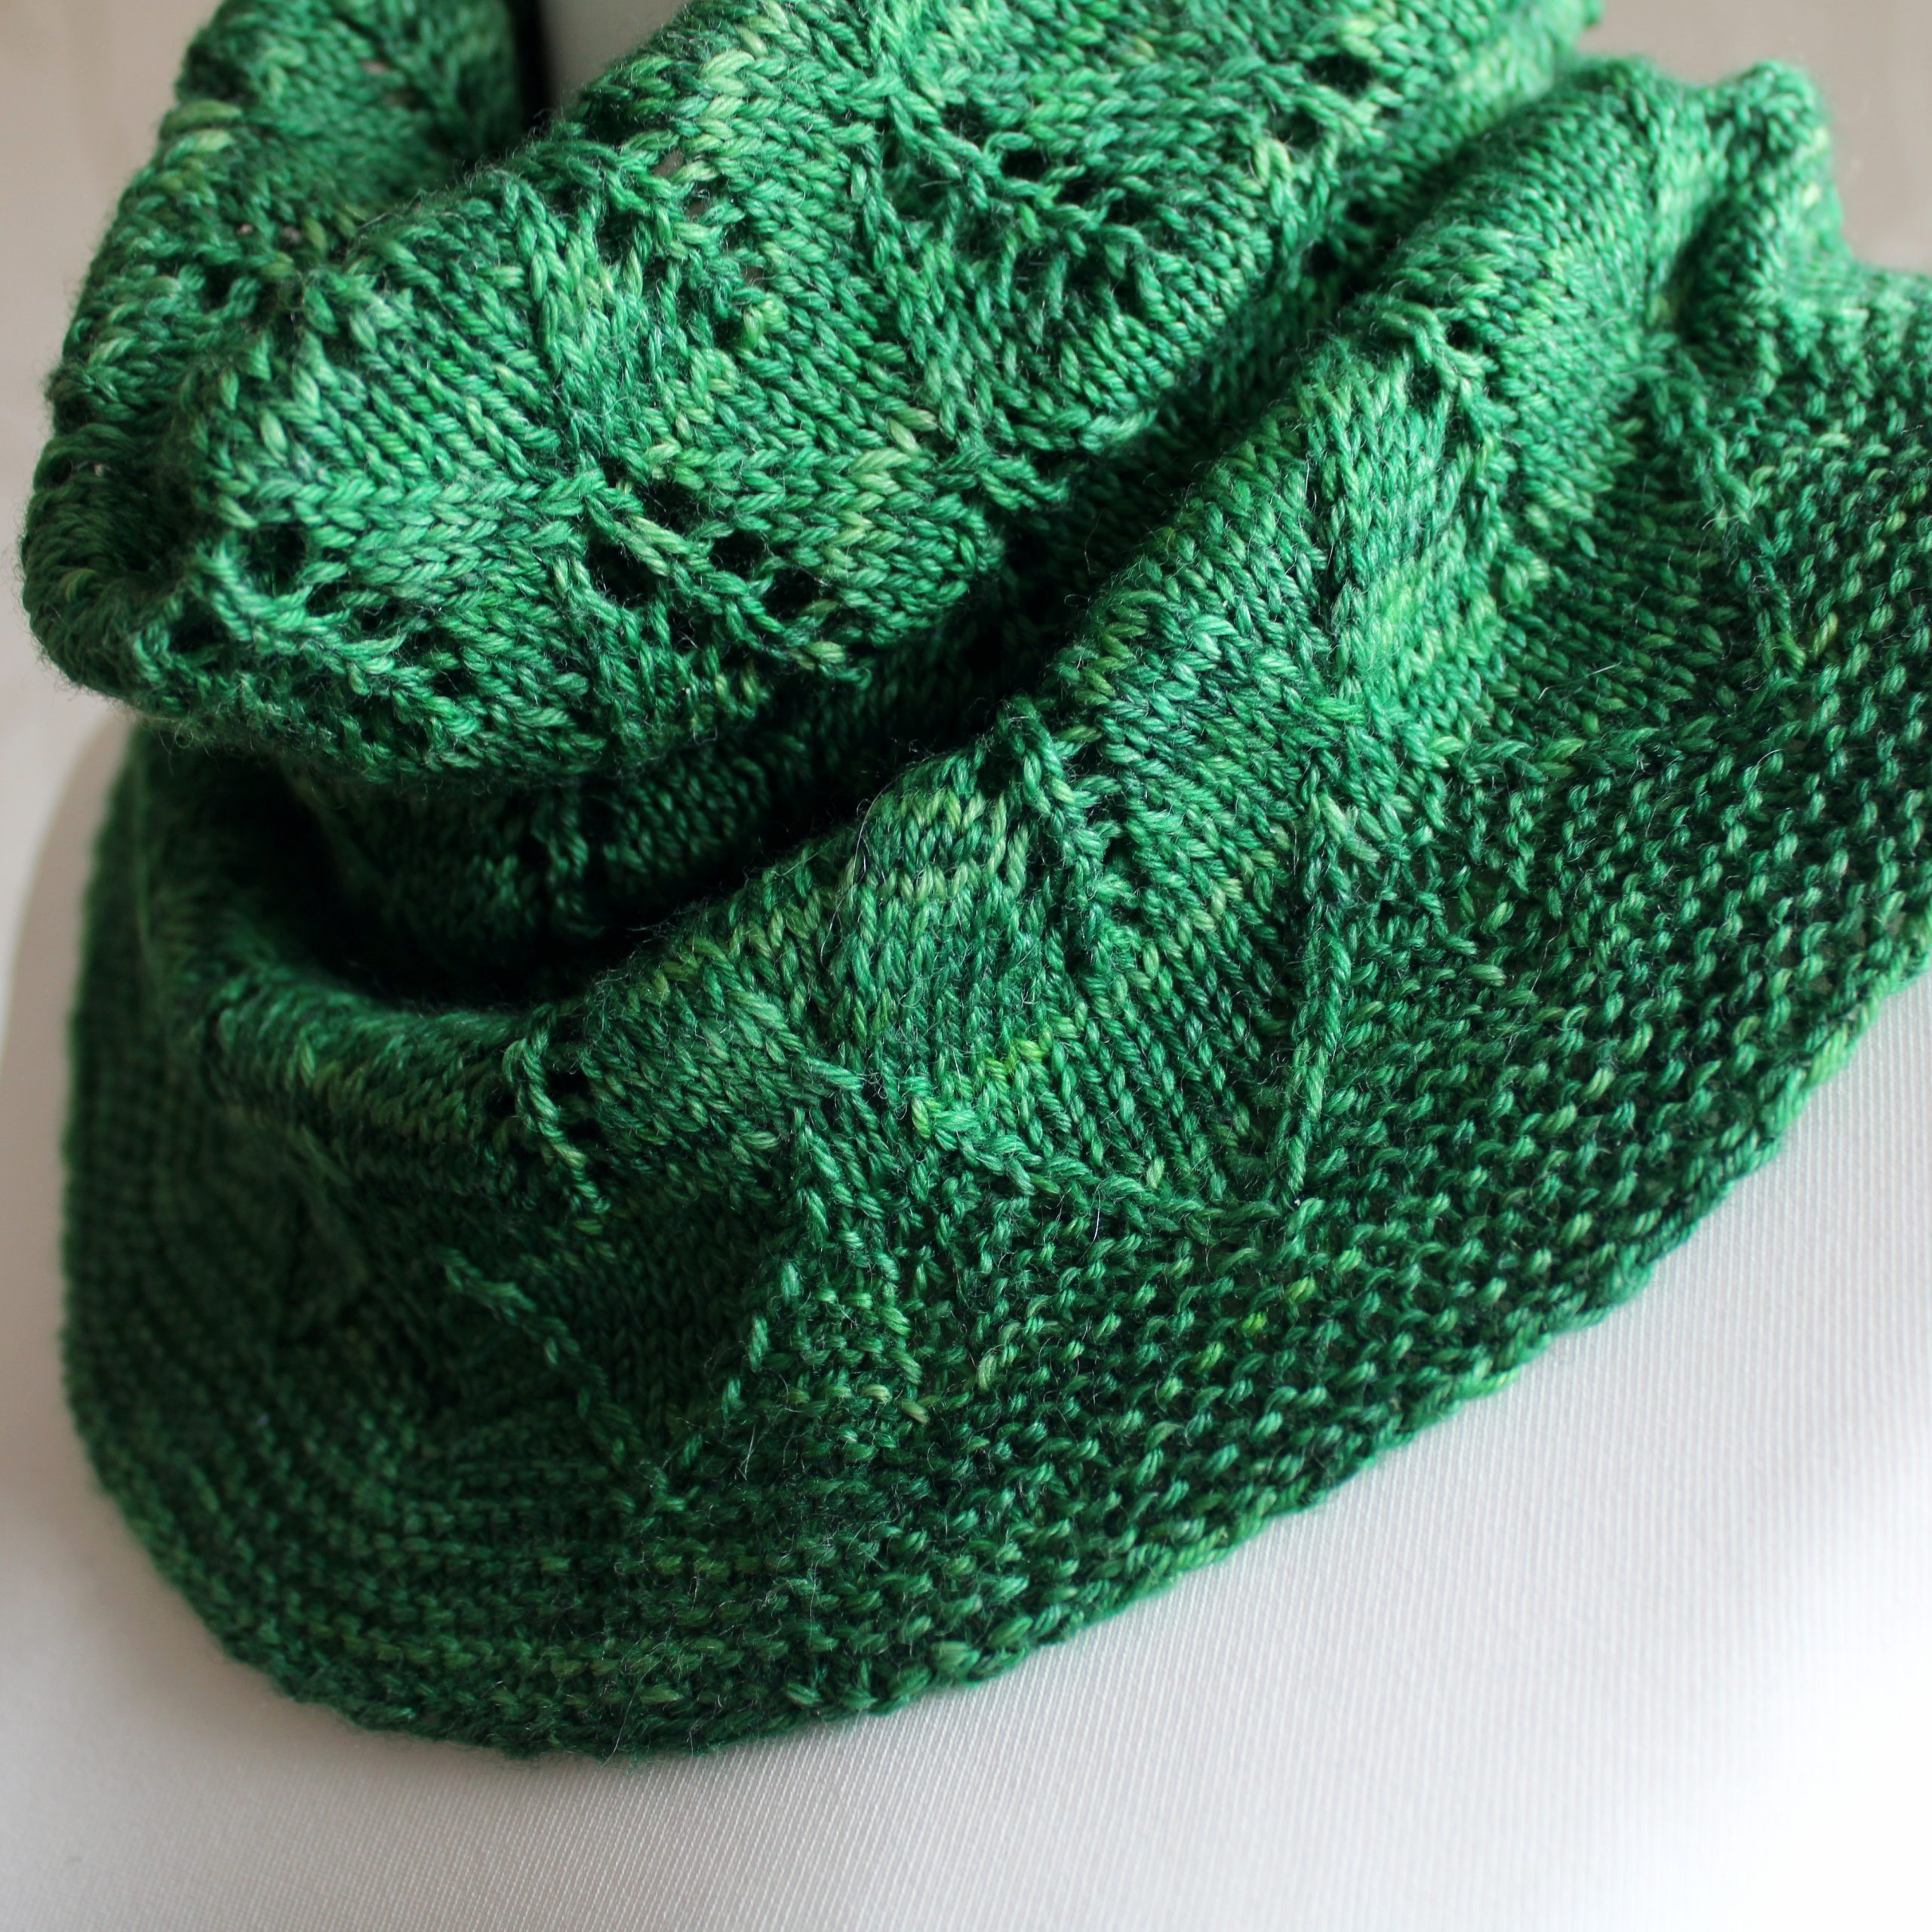 A close up on a green cowl with diamond shaped leaves and a wide lace border modelled on a mannequin